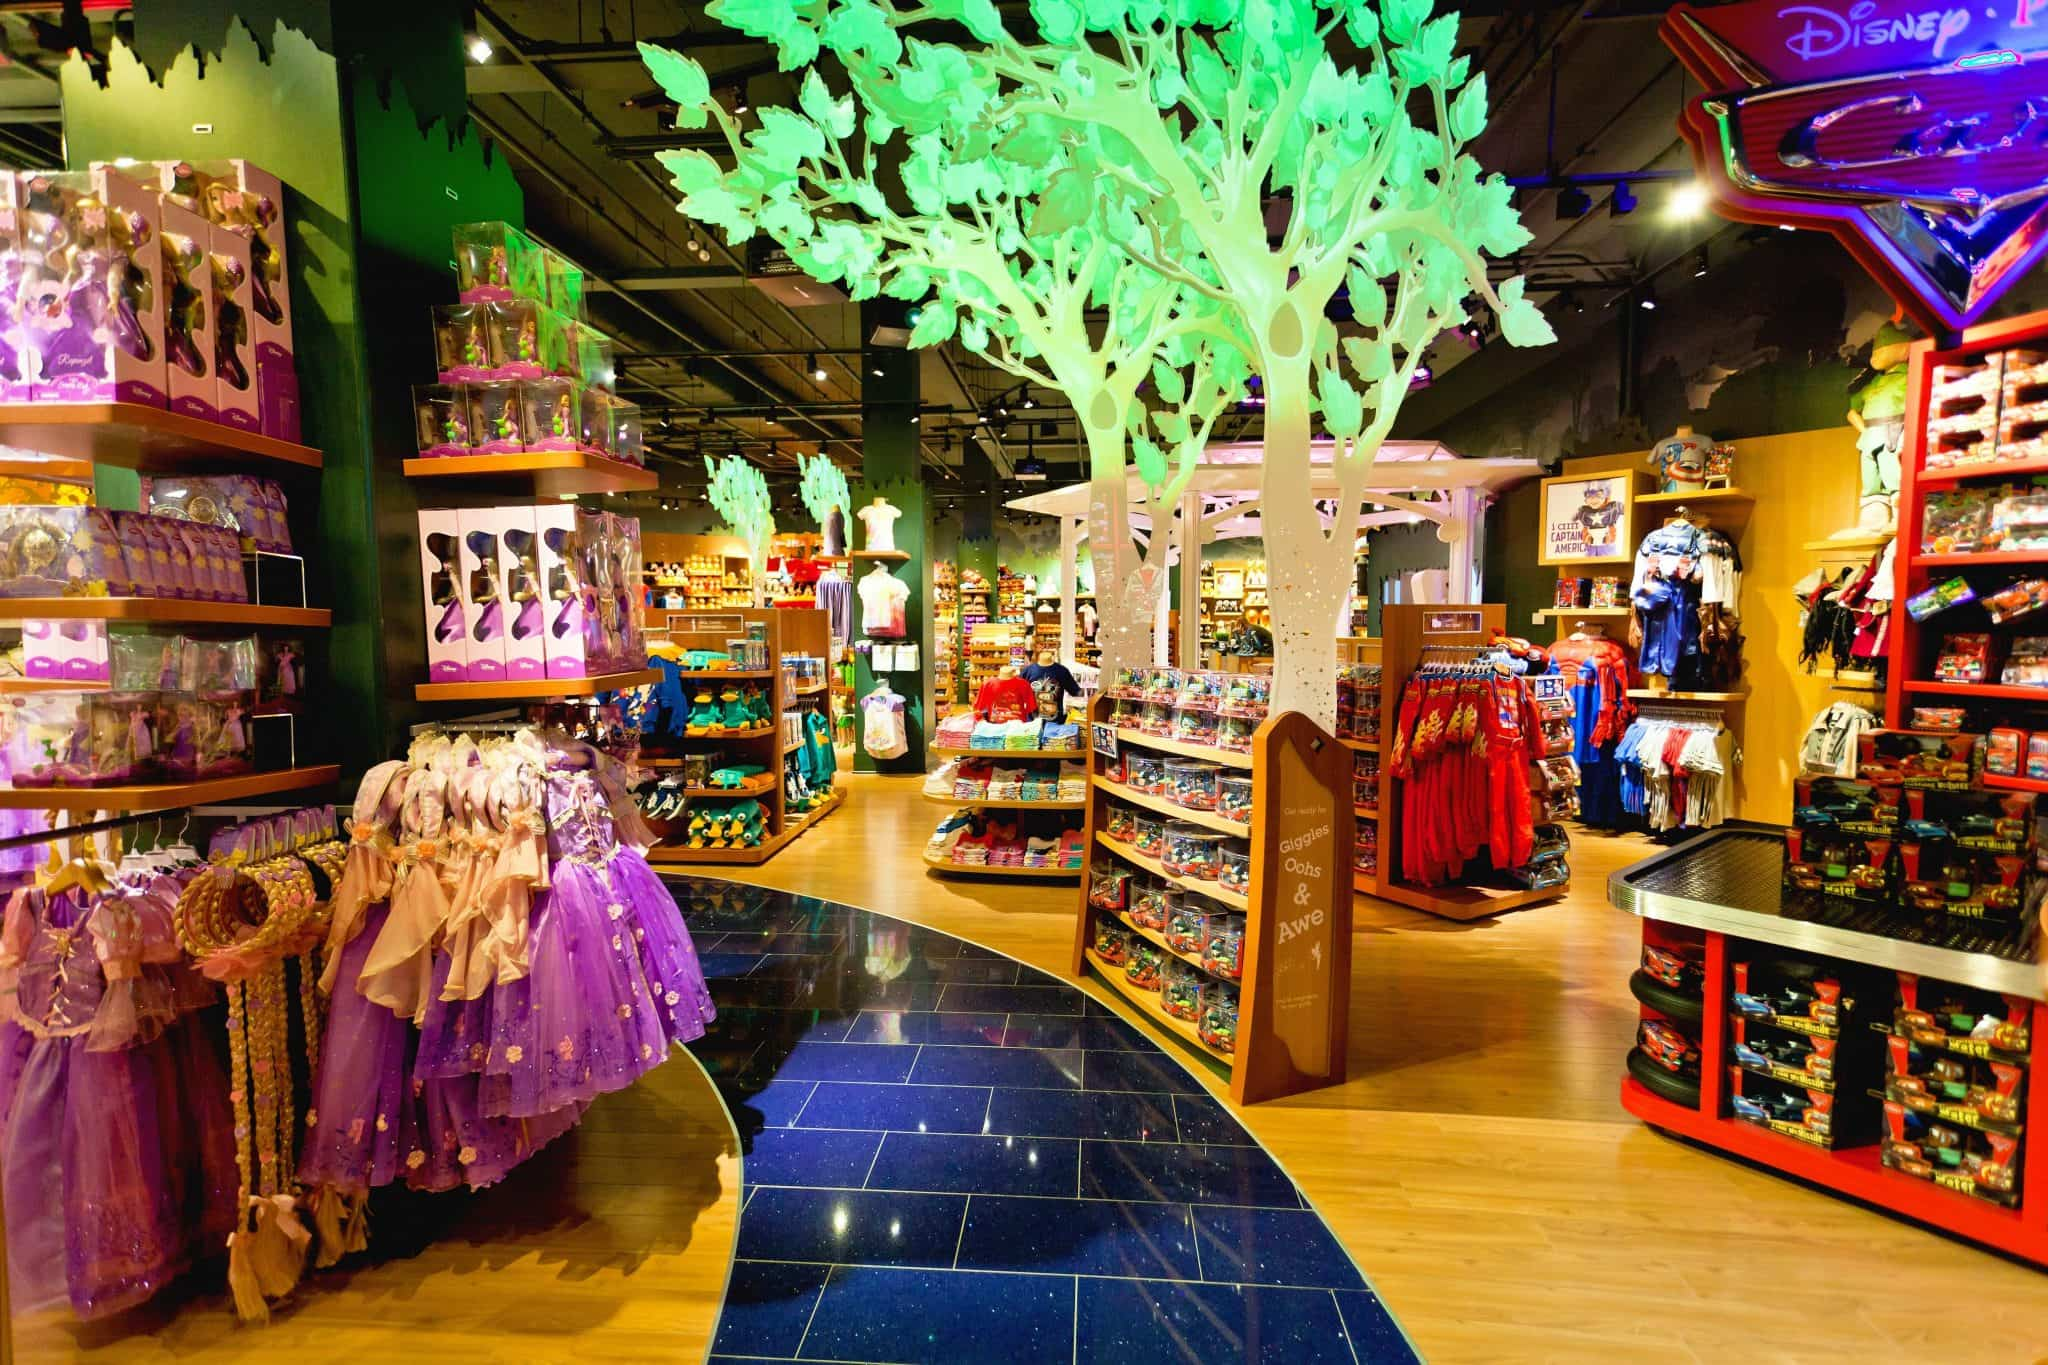 Discover all you need to know about Disney movies, live shows, holidays, parks and the latest magical gifts from shopDisney.